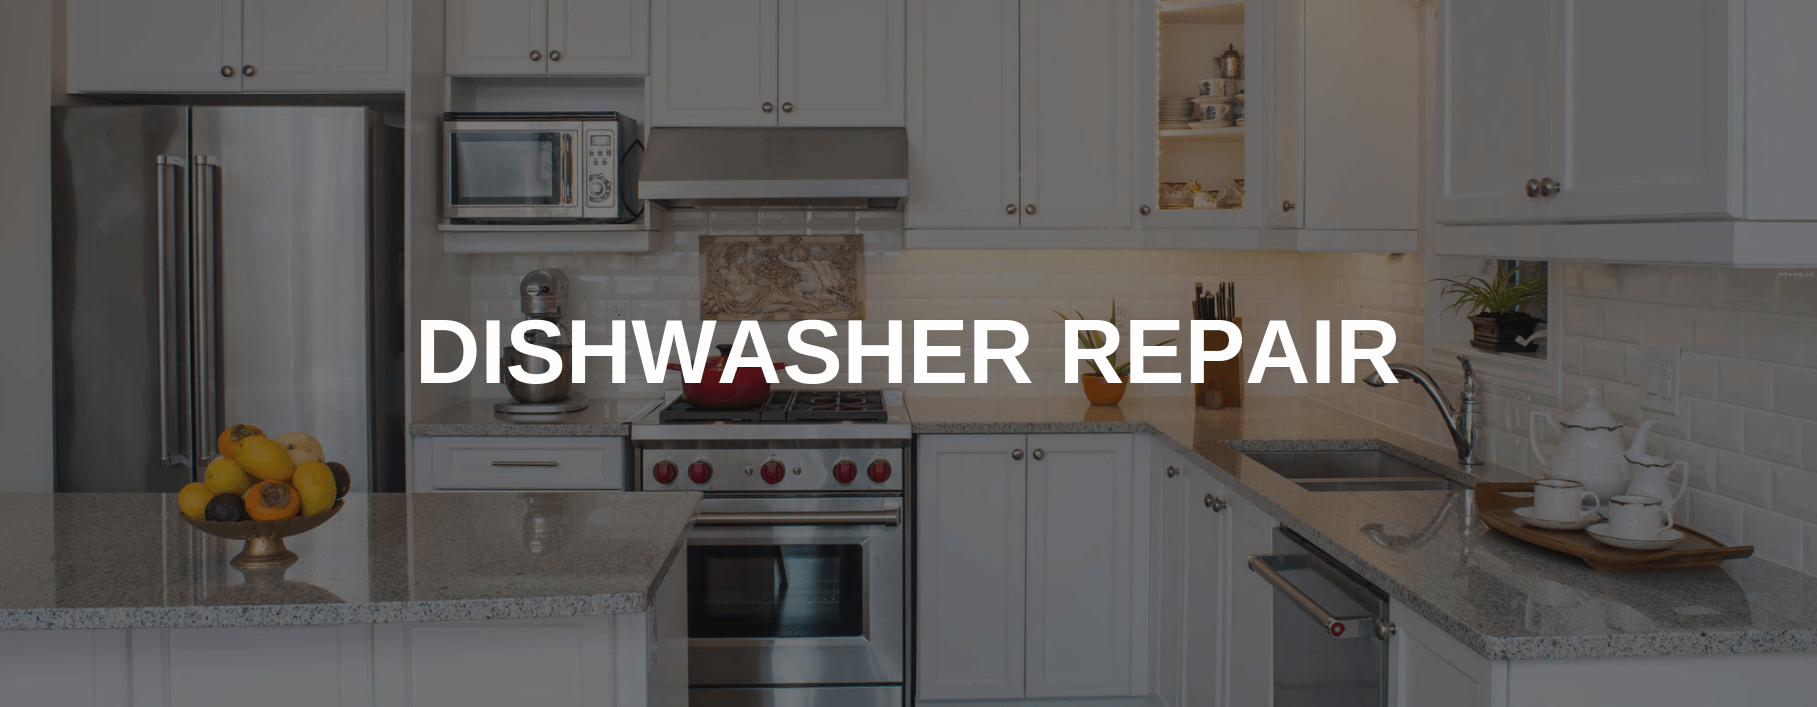 dishwasher repair garden grove